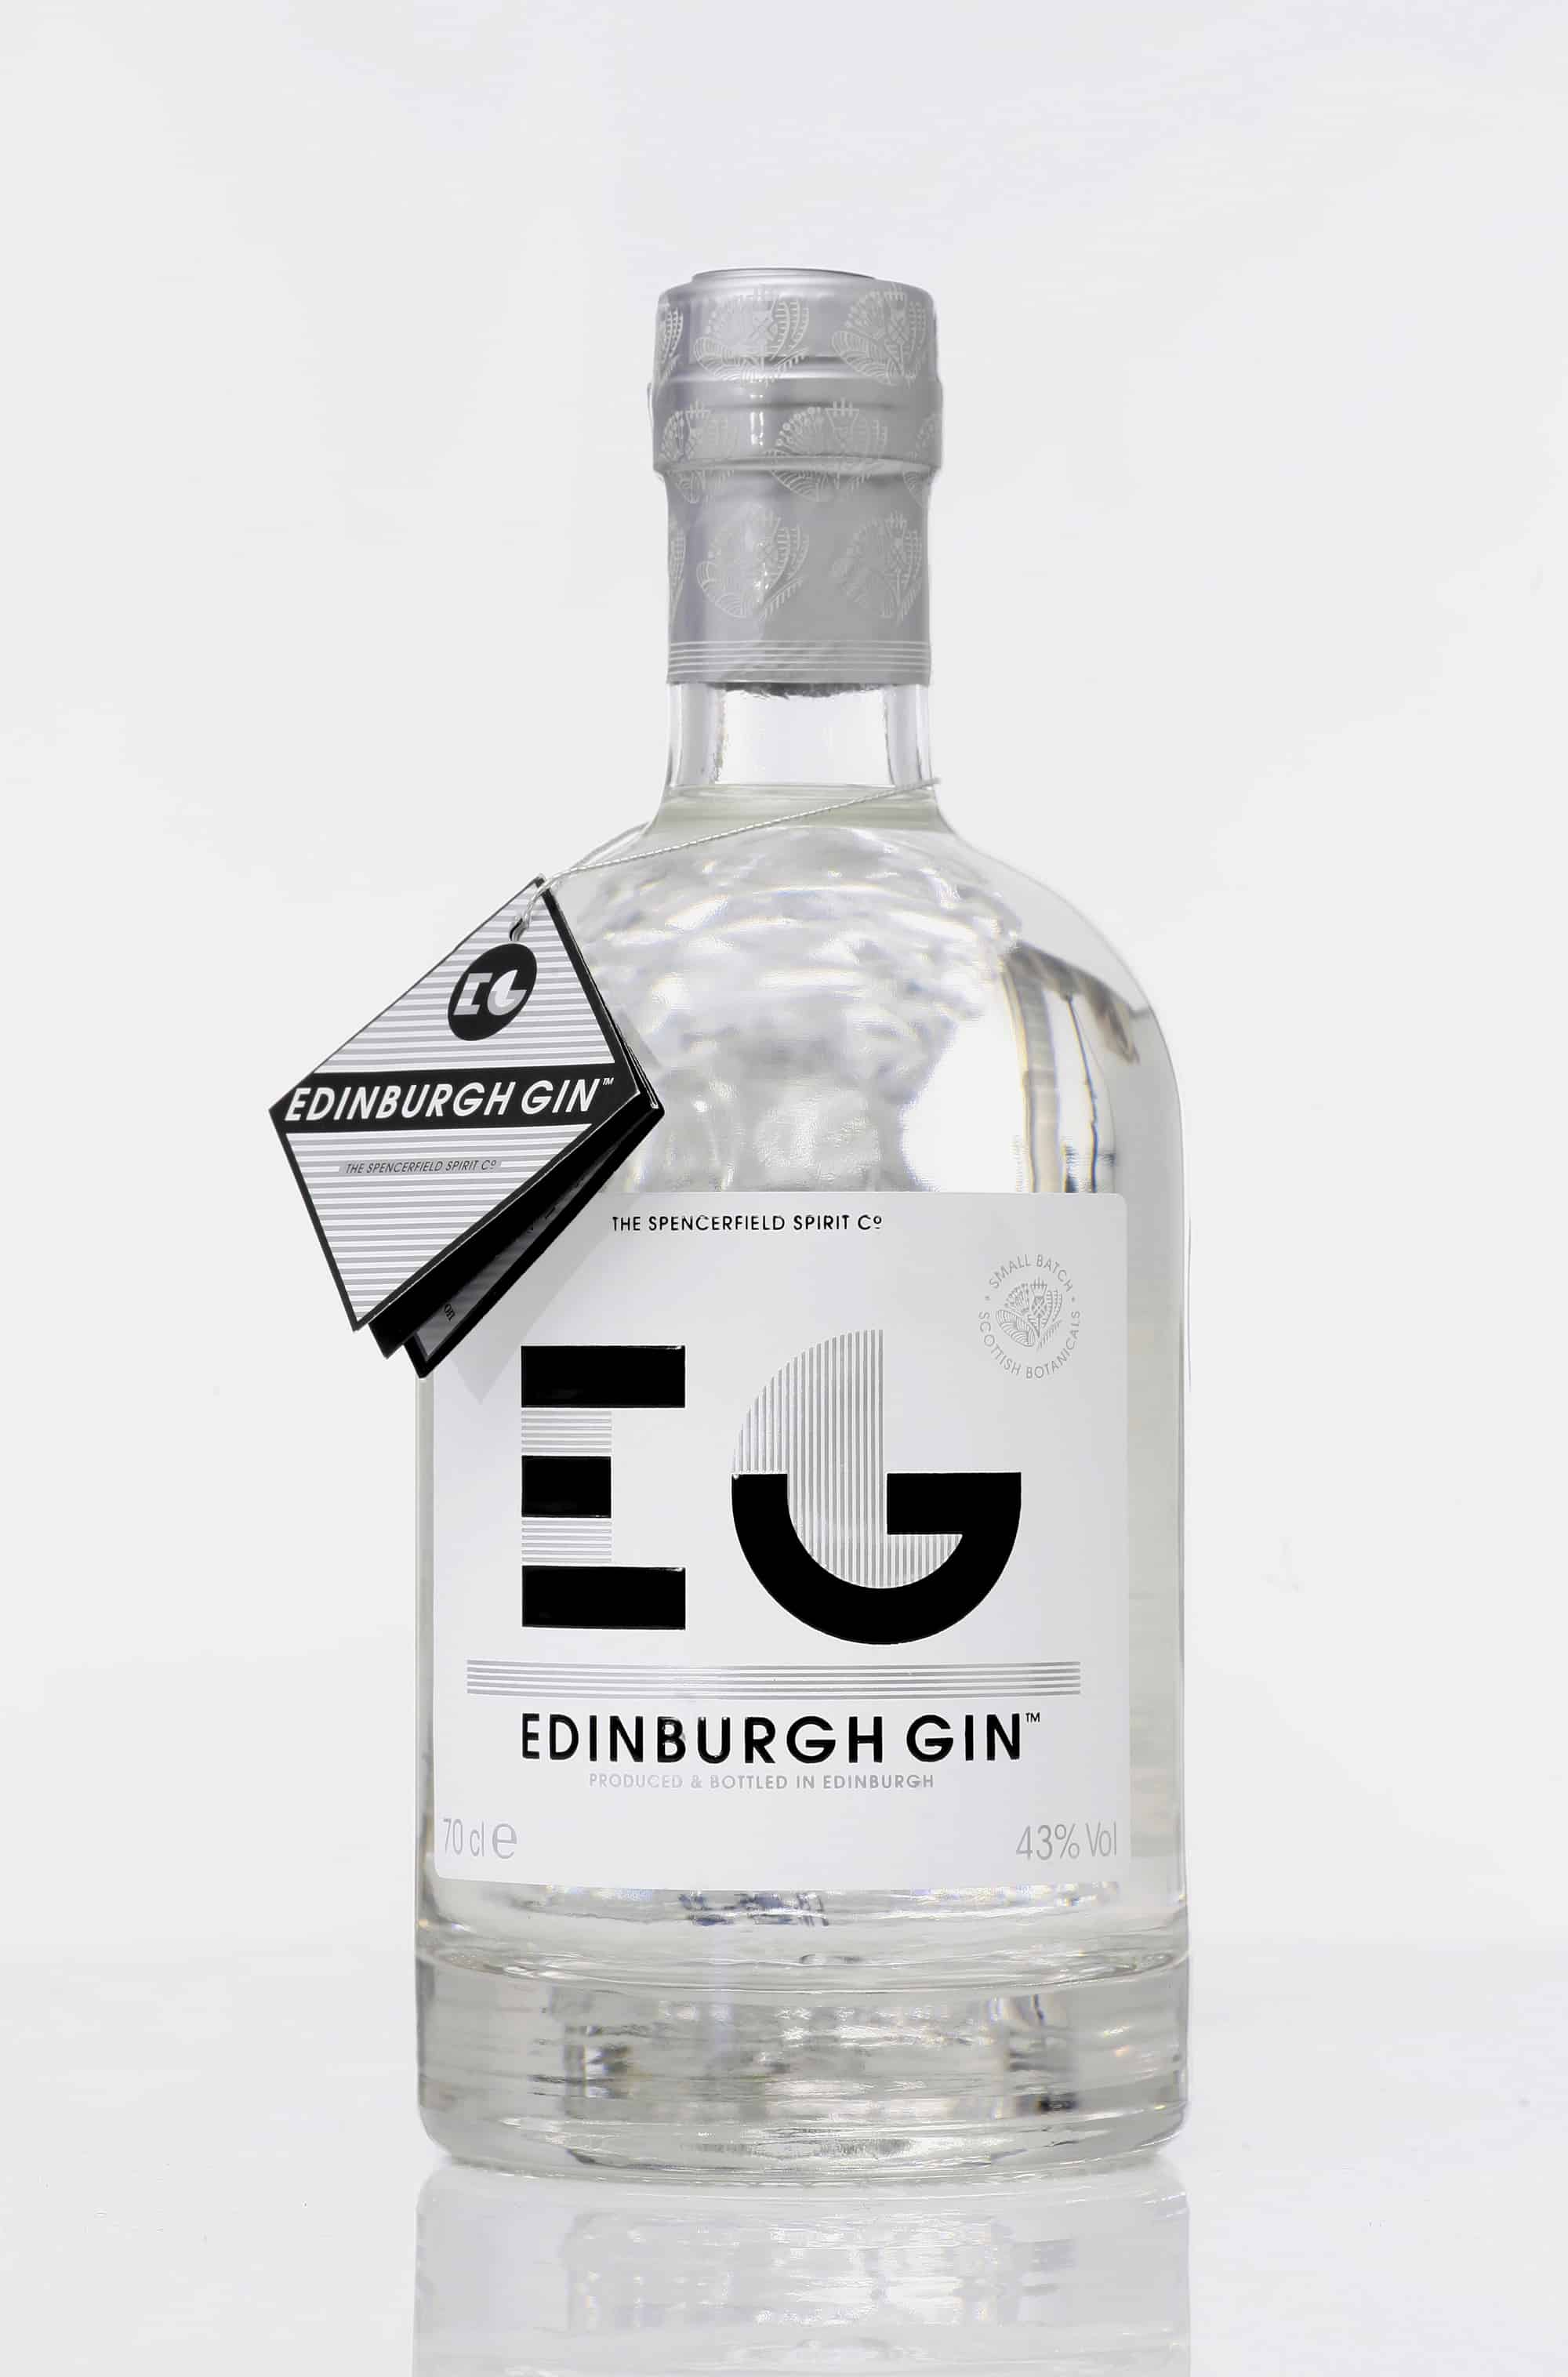 Edinburgh Gin bottle